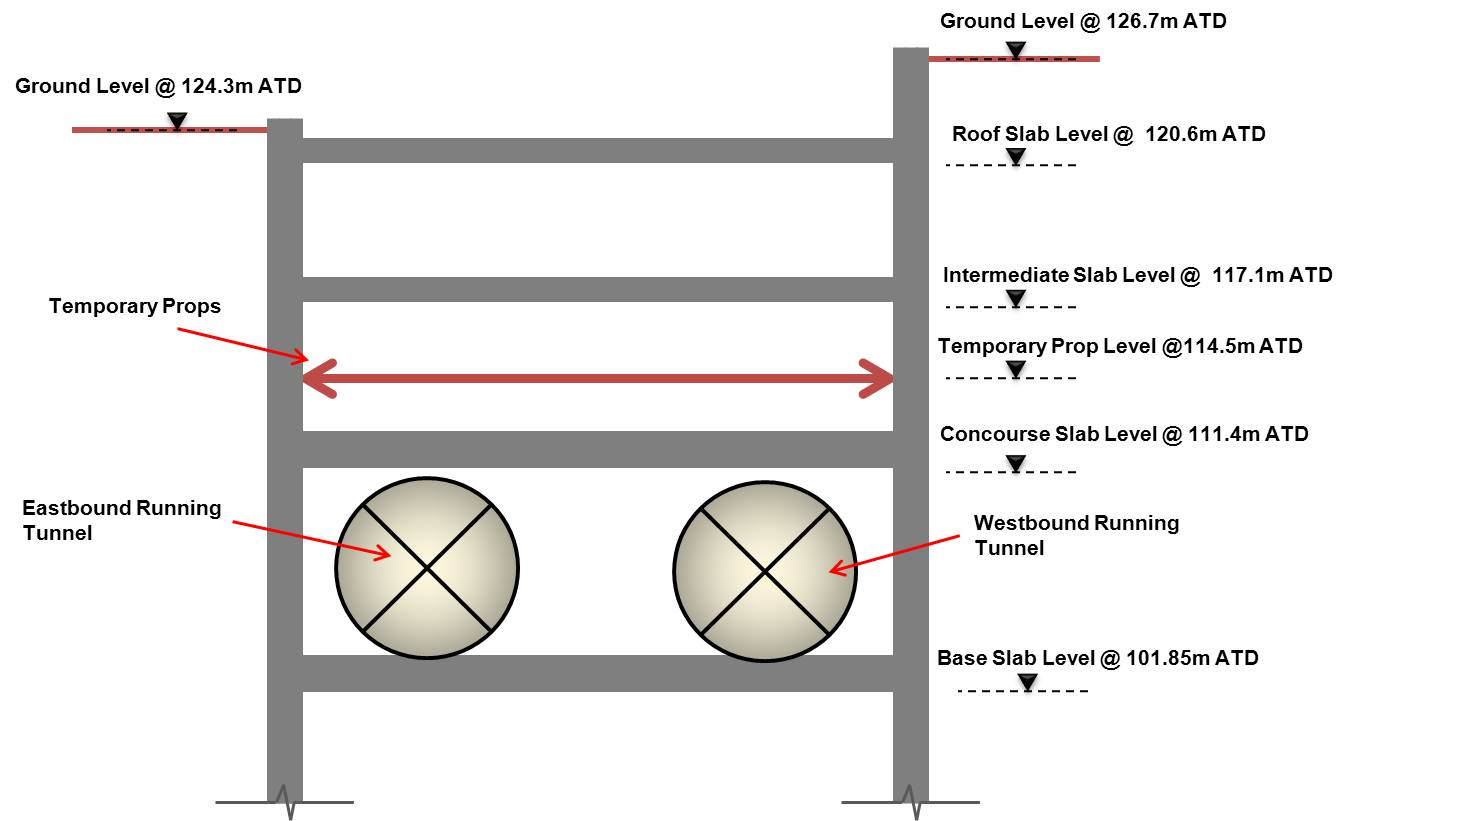 Figure 3. Station Cross Section